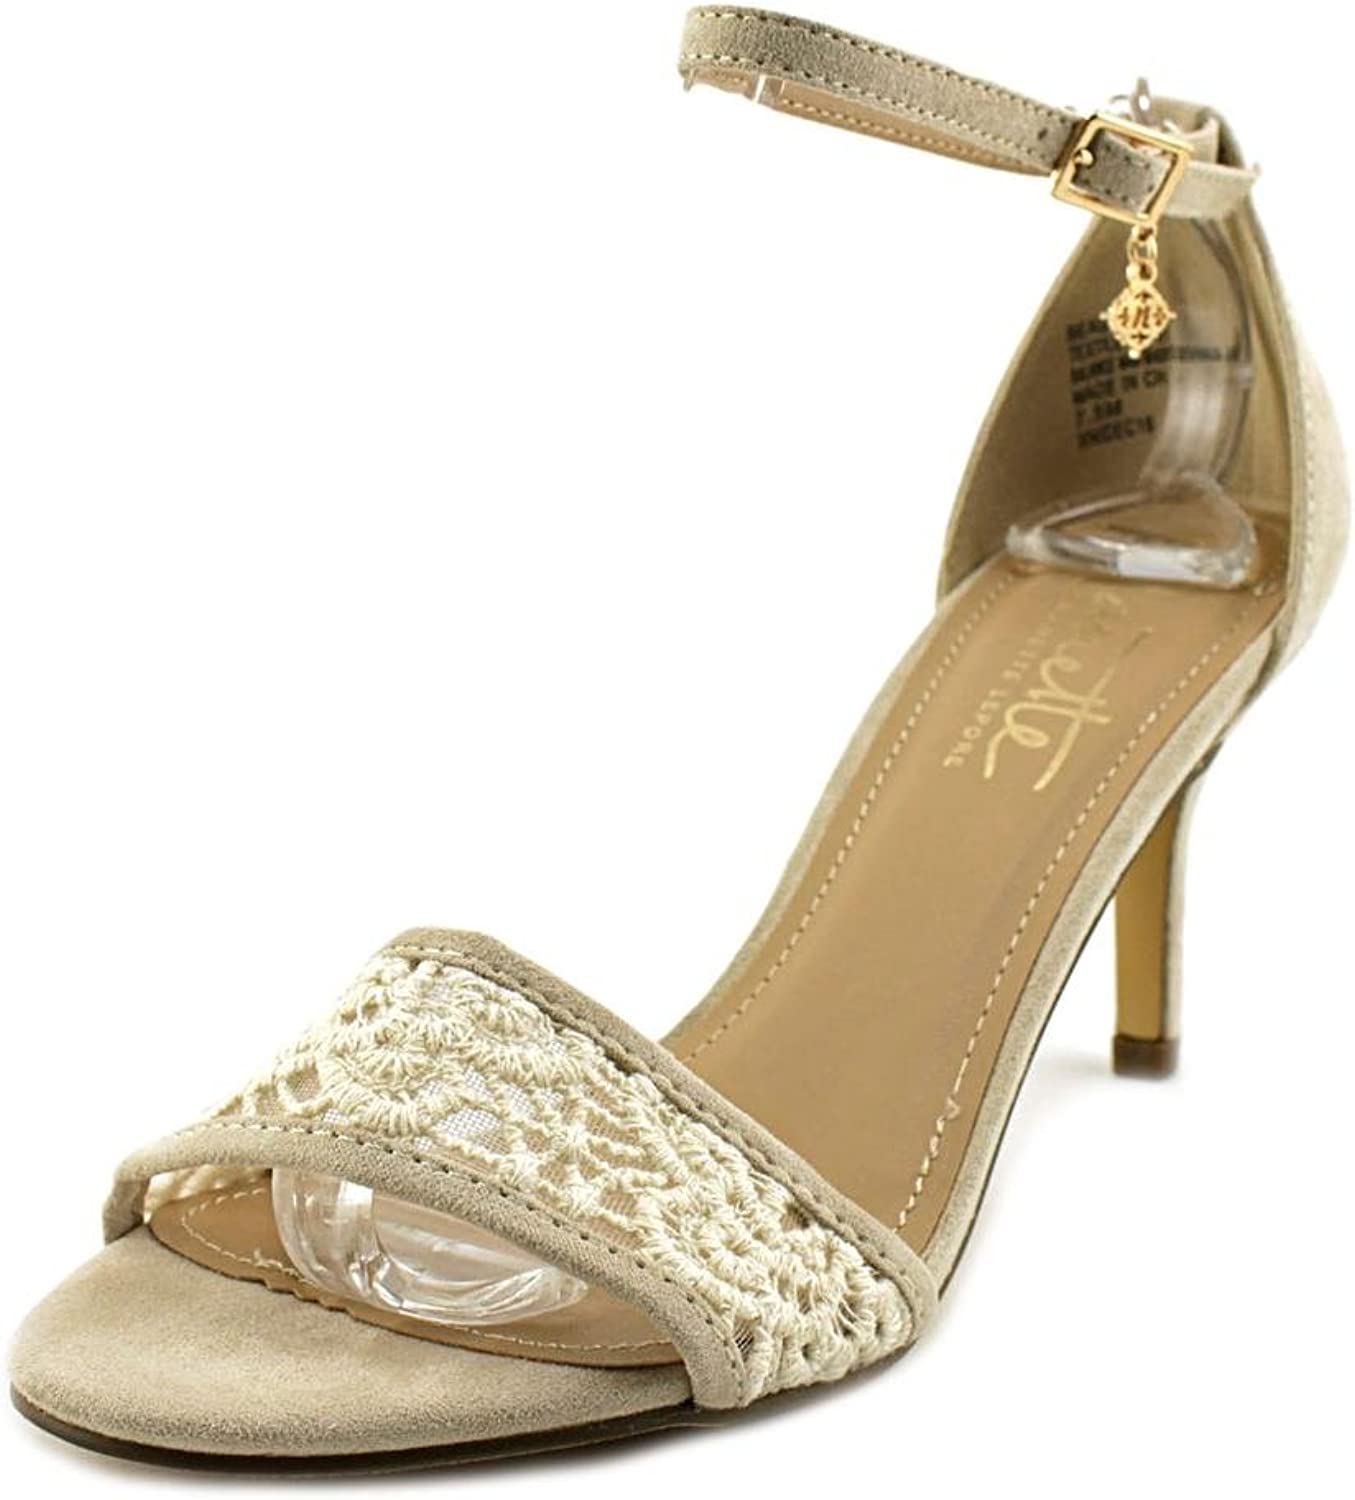 Nanette Lepore Womens Beauty Open Toe Casual Ankle Strap, Ivory, Size 7.5